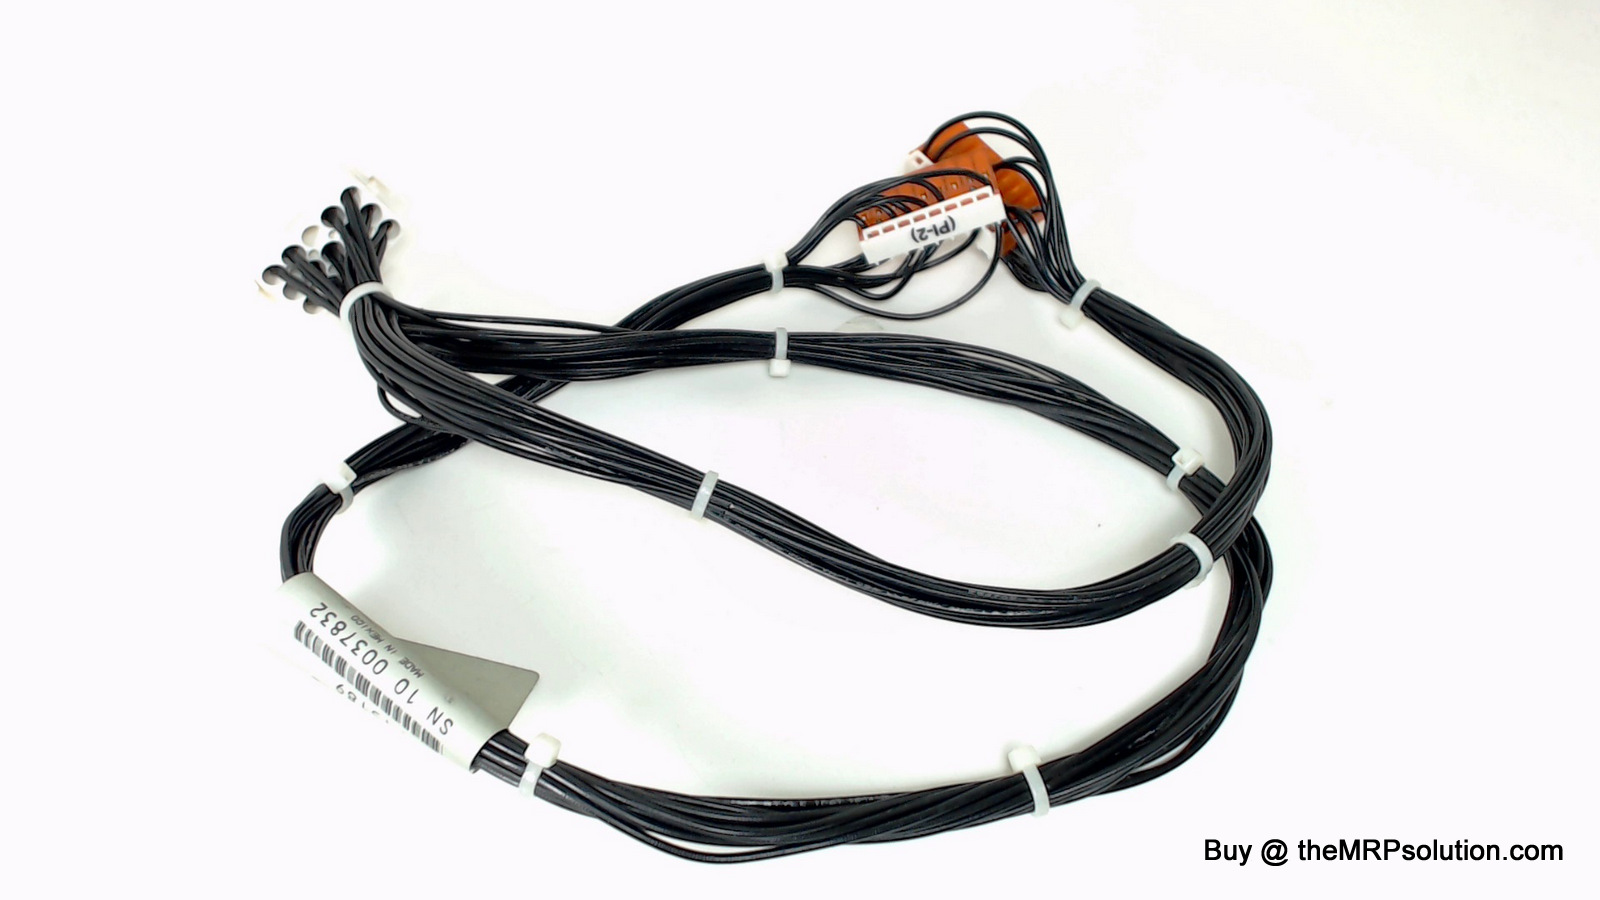 IBM 44H7815 CABLE, HARNESS Refurbished